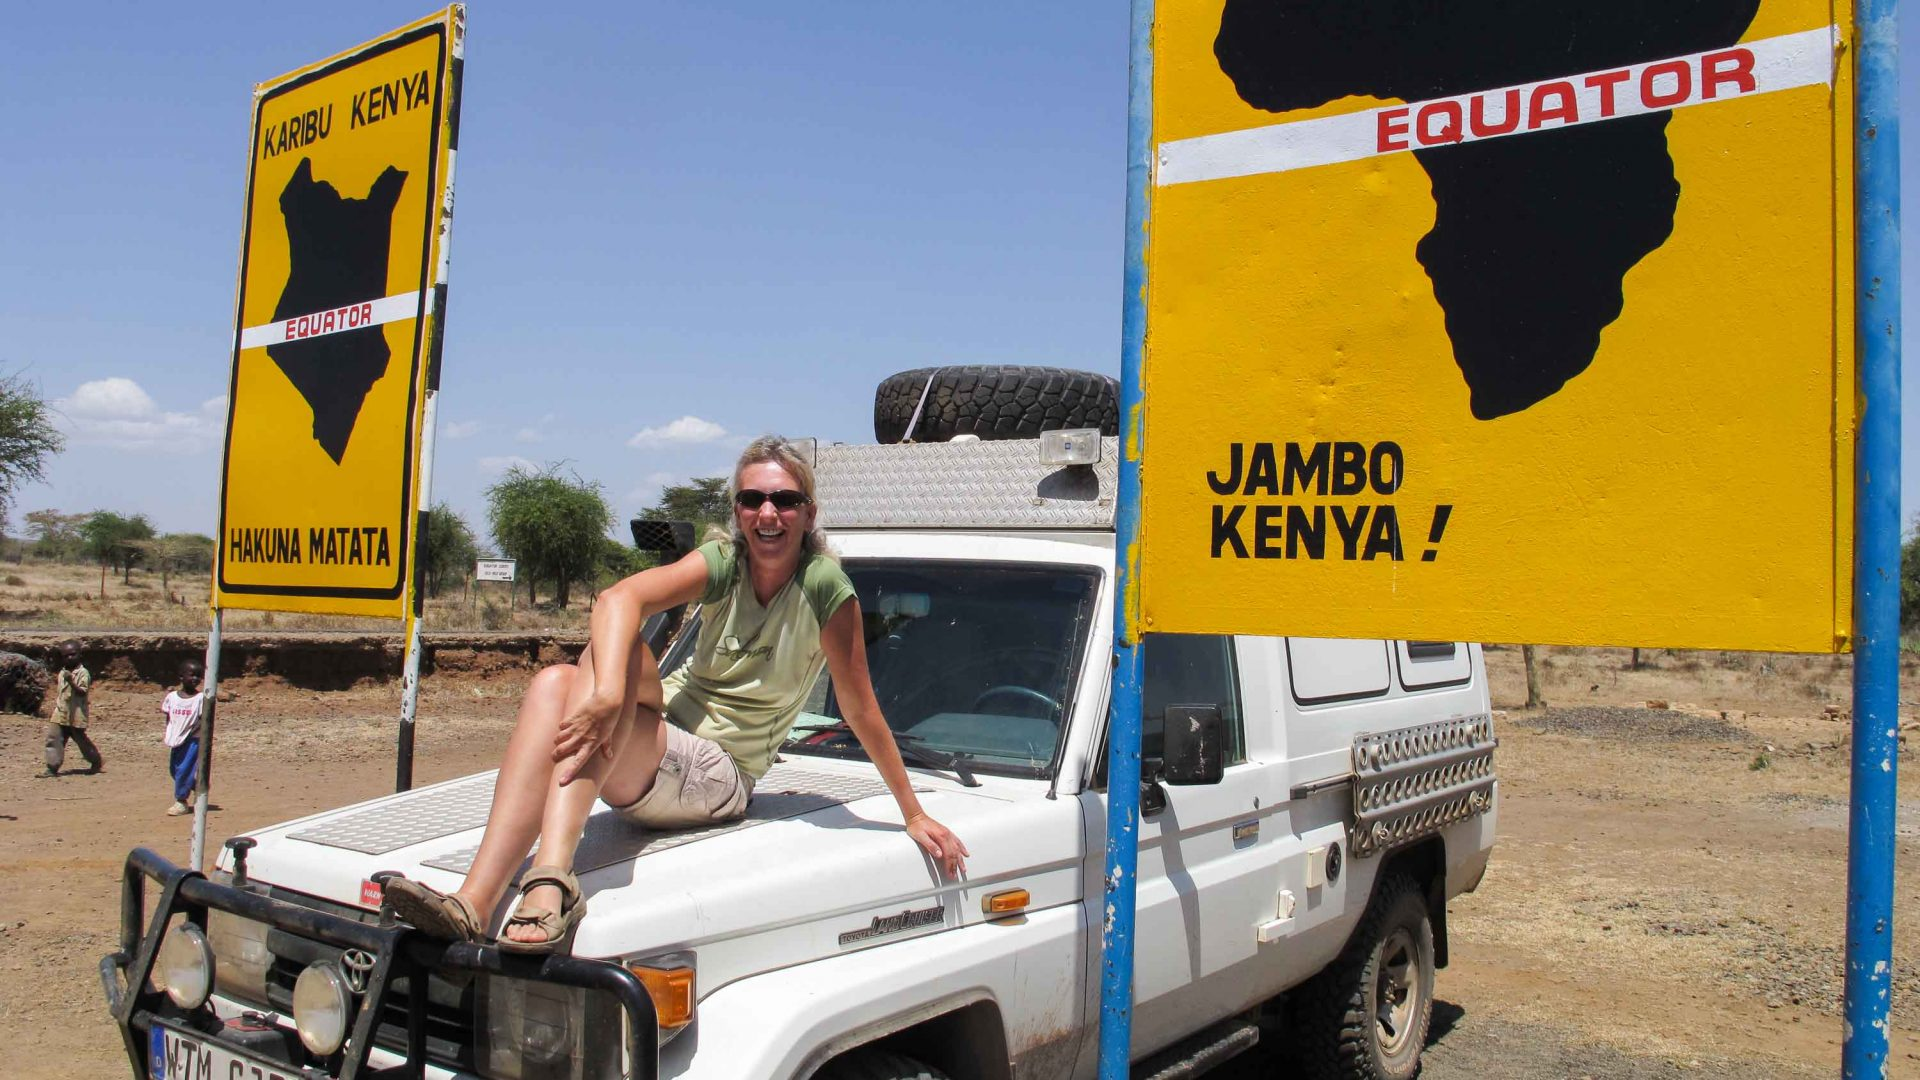 Claudia Janssen at the equator in Kenya.